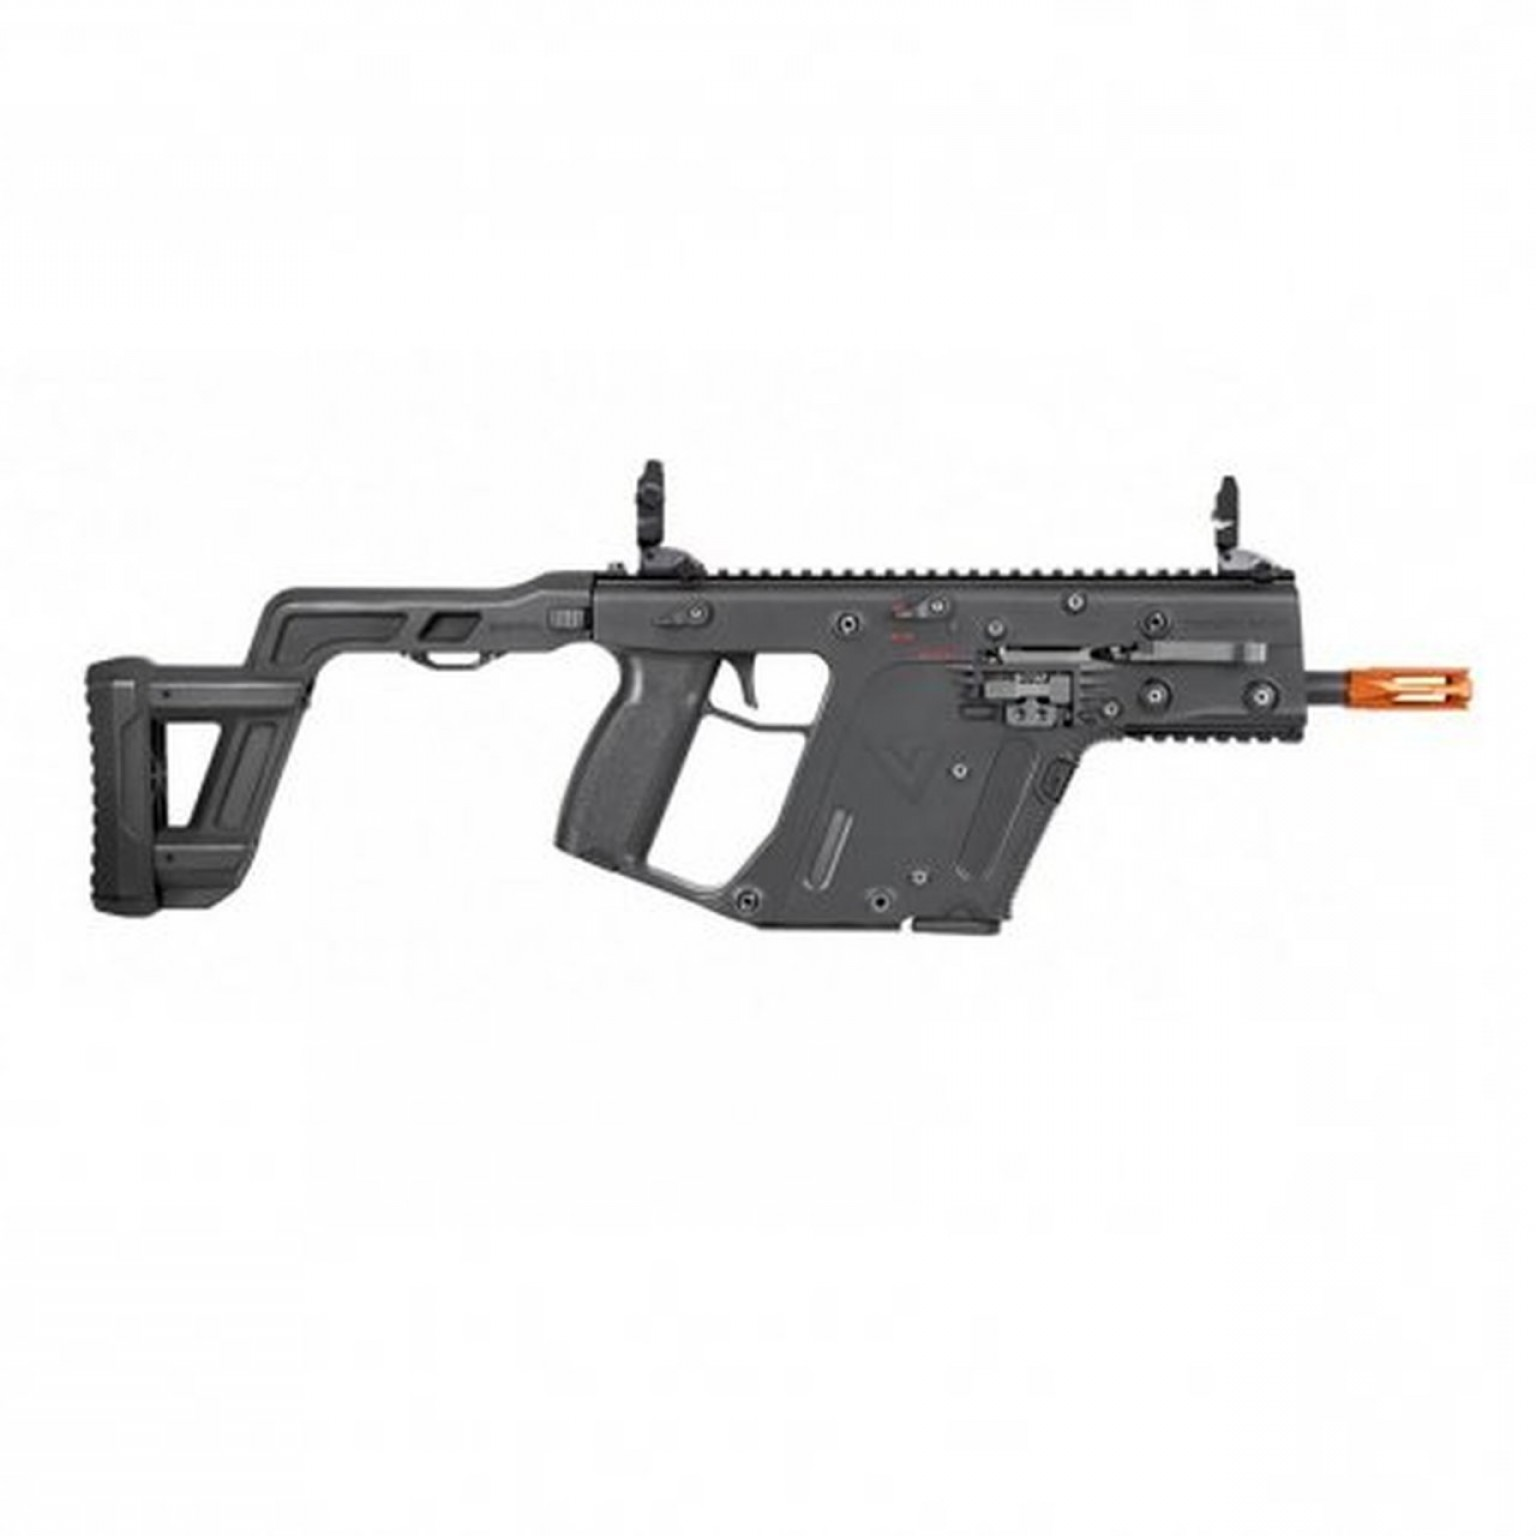 Vector Arms Uzi Manual: Krytac Kriss Vector Smg Aeg Airsoft Gun